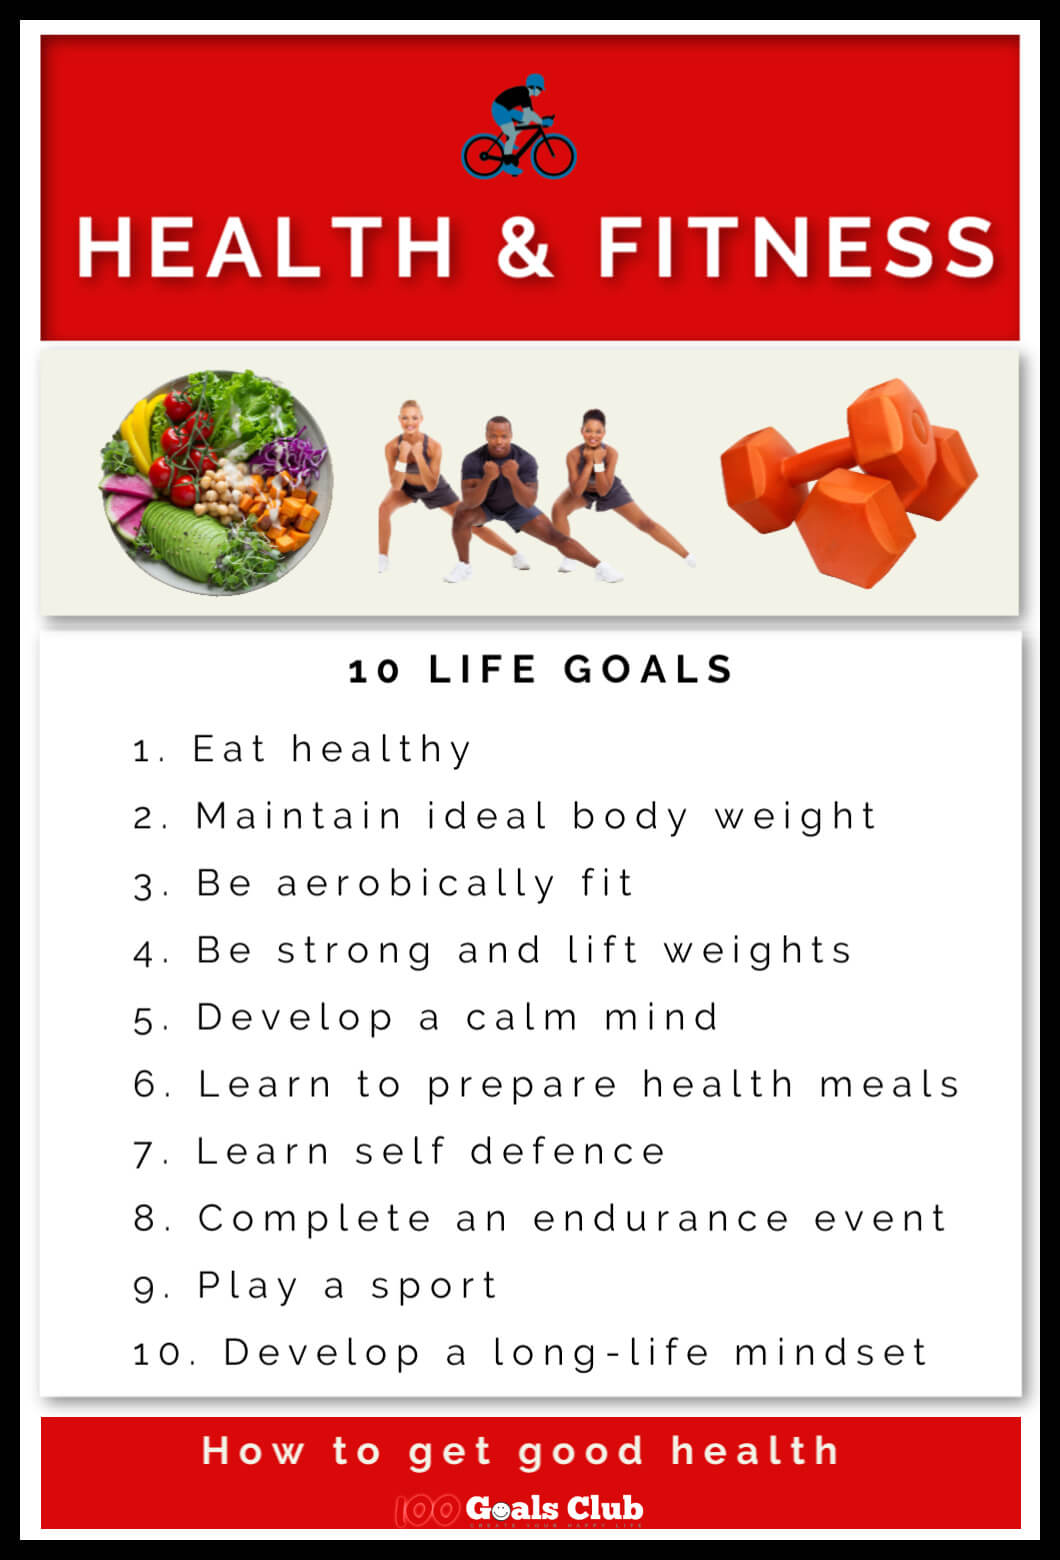 How to get good health